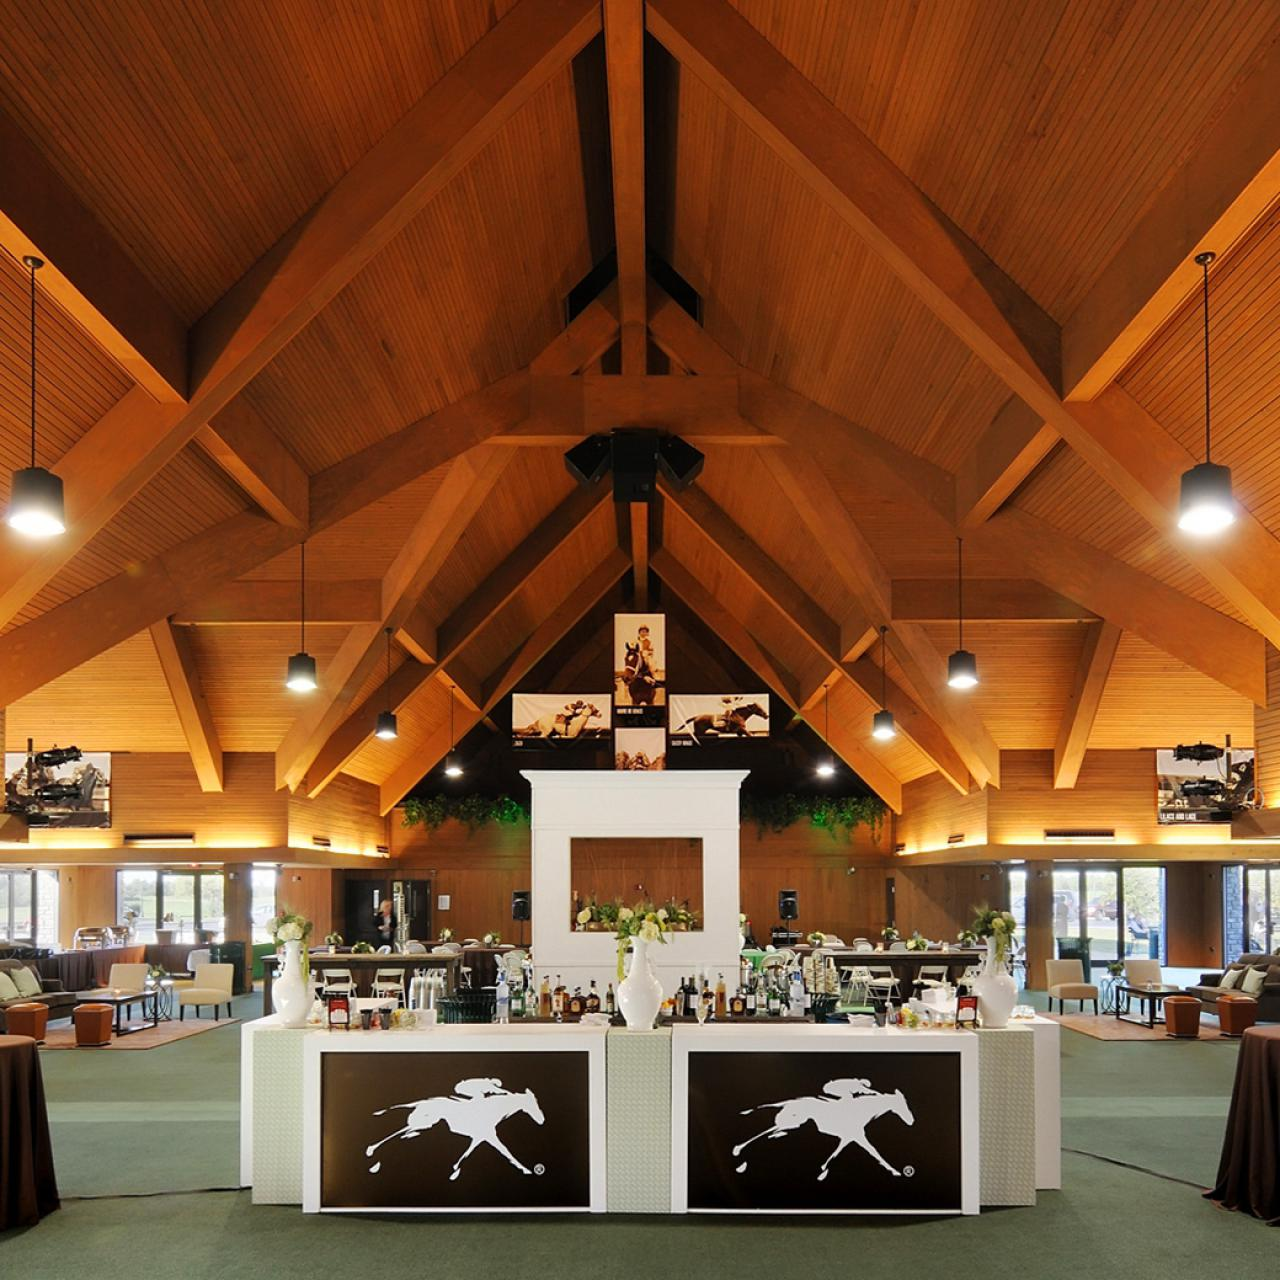 Keeneland Entertainment Center and Keene Barn